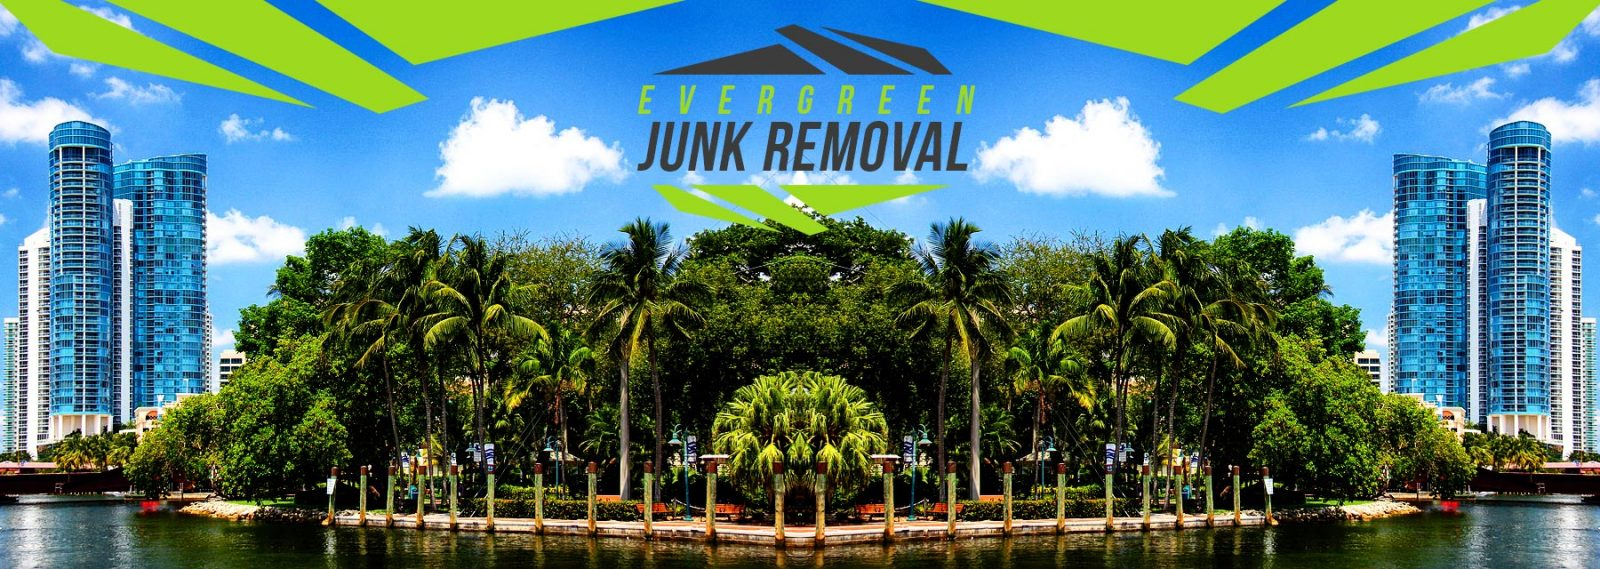 Coral Springs Hot Tub Removal Company